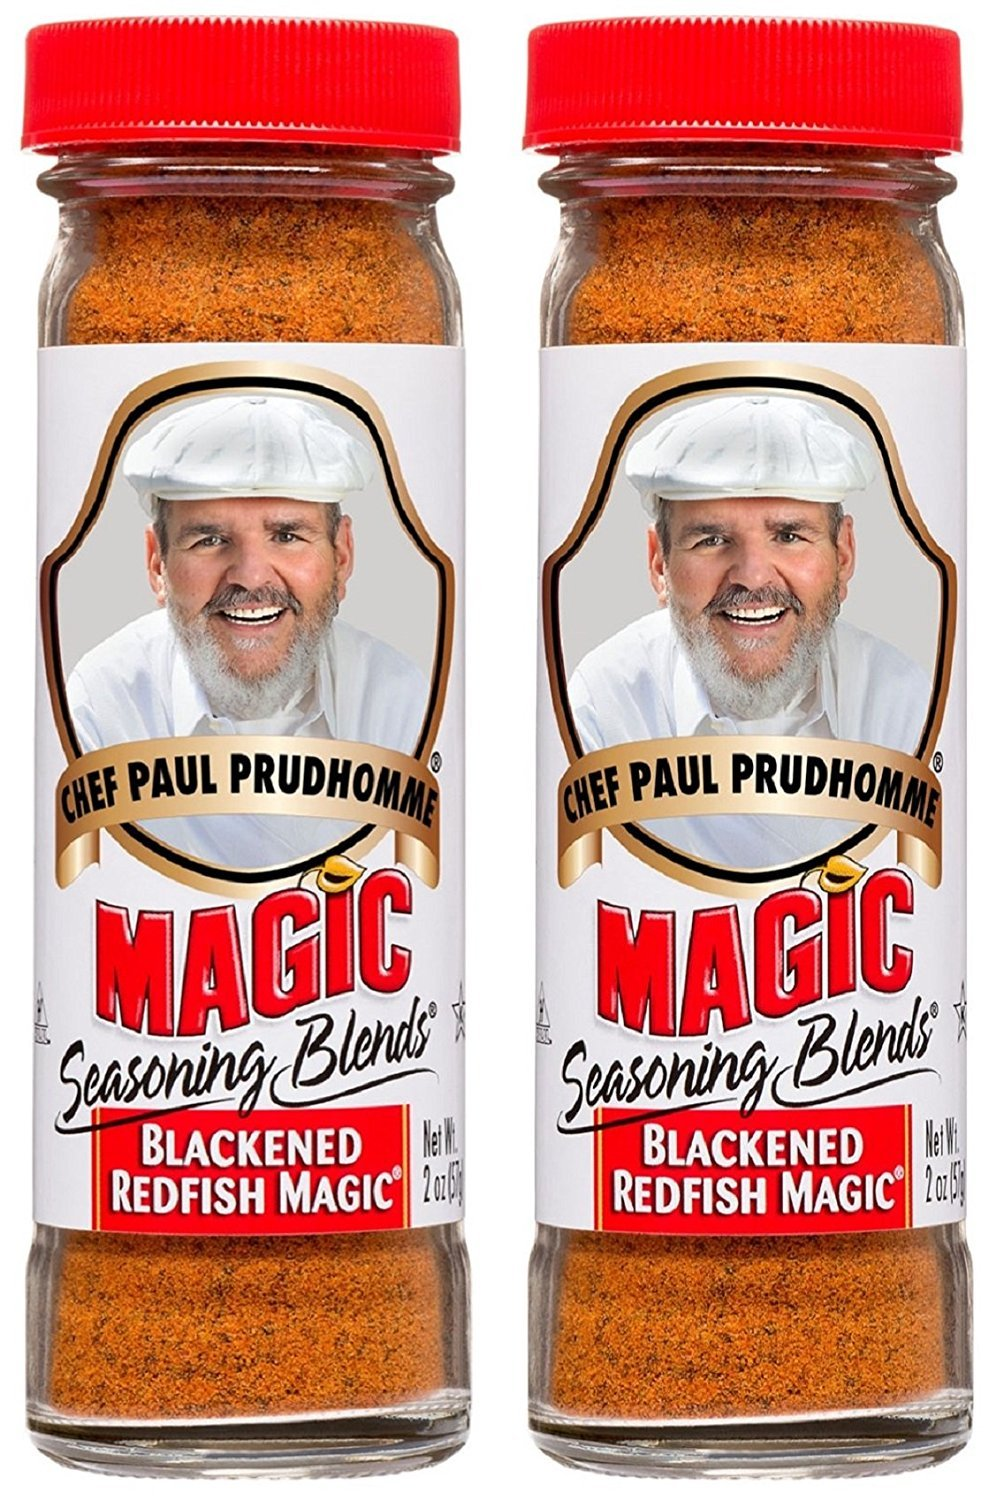 Chef Paul Prudhomme's Magic Seasoning Blends Chef Paul Blackened Redfish Magic Seasoning, 2-Ounce (Pack of 2)